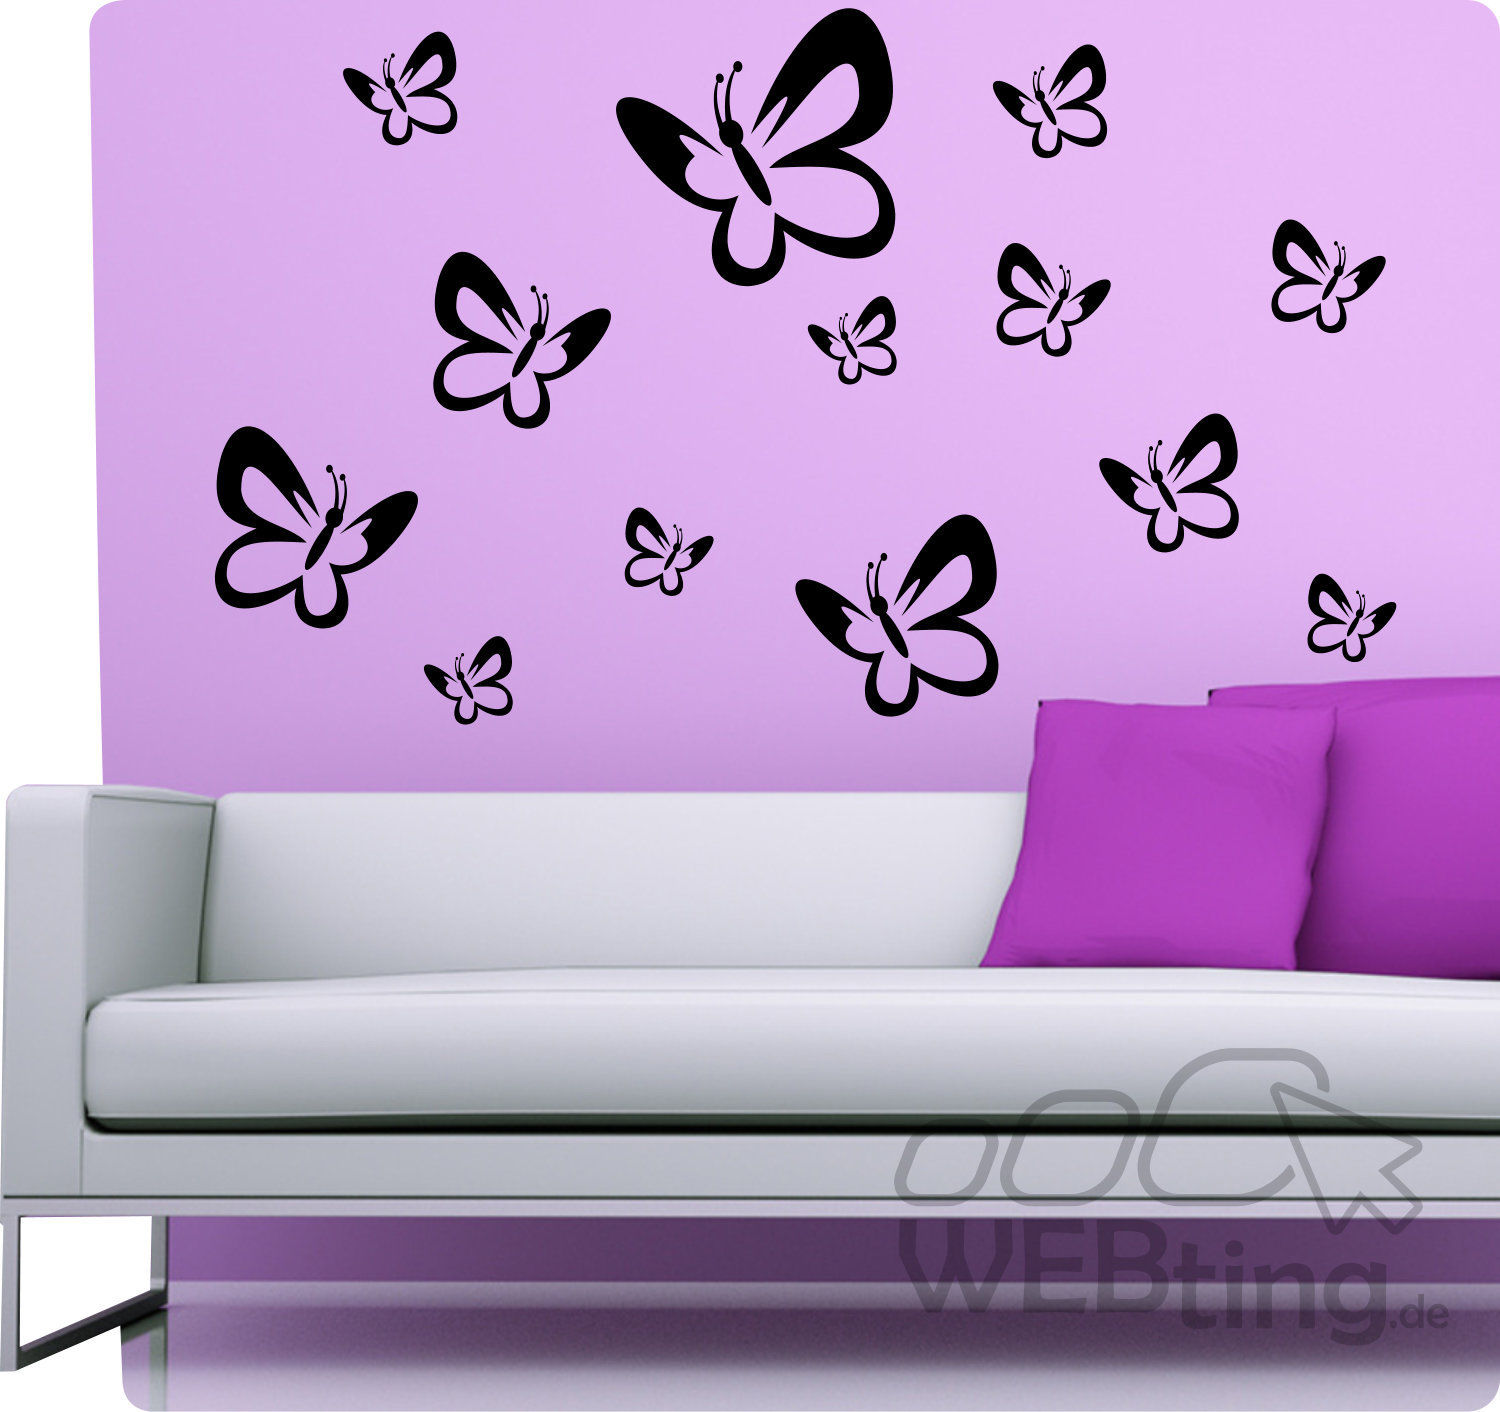 schmetterling wandtattoo wandaufkleber aufkleber deko. Black Bedroom Furniture Sets. Home Design Ideas